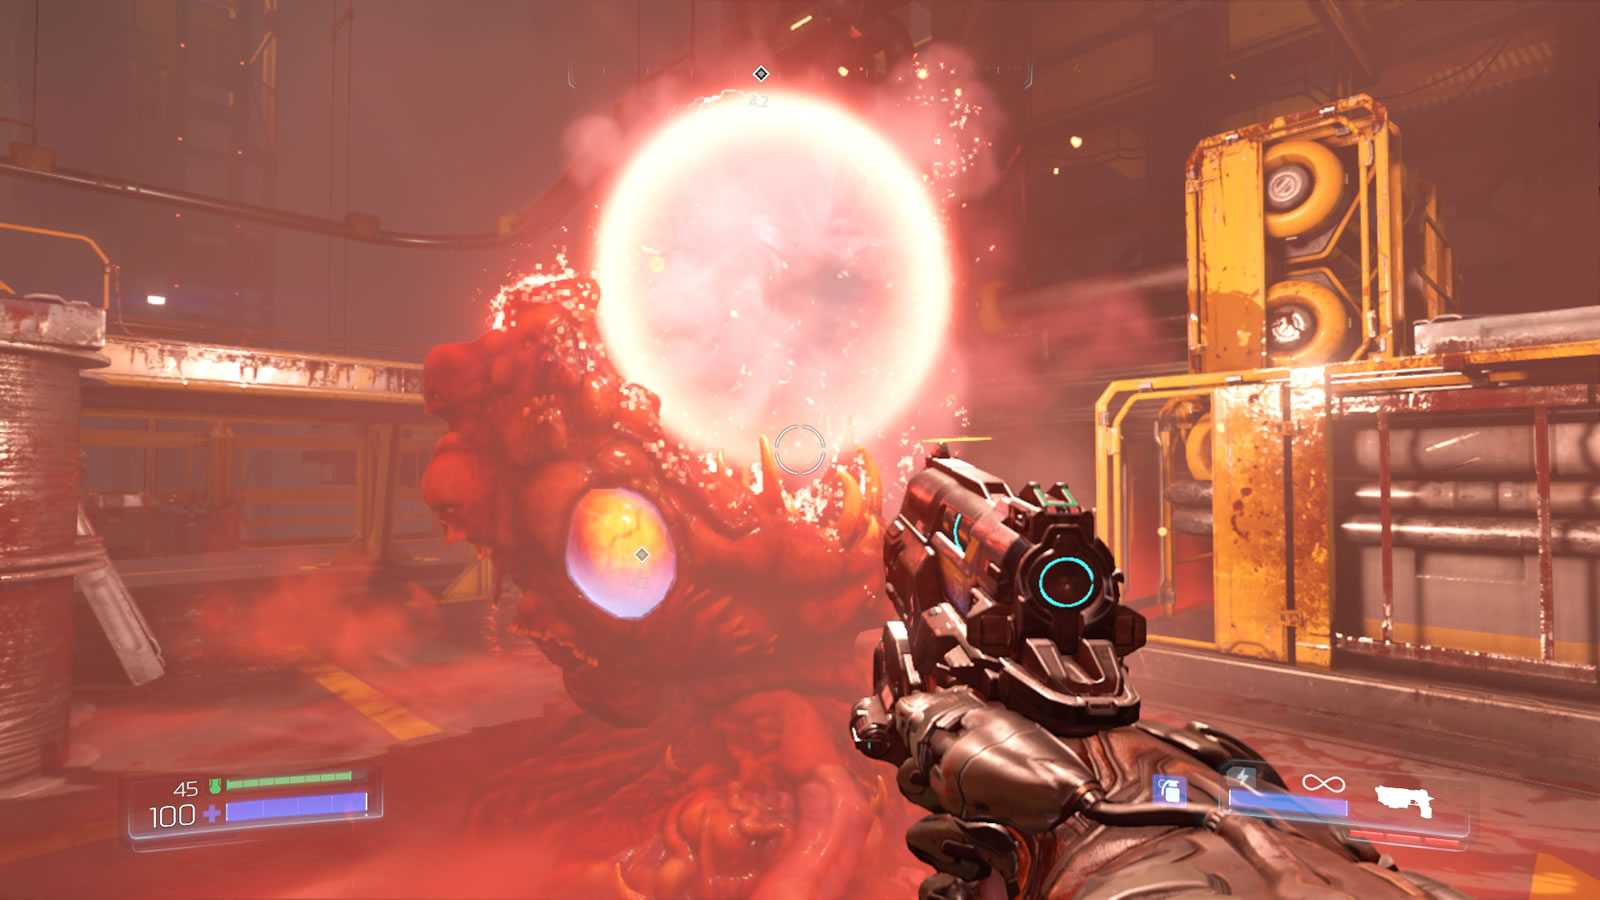 doom-2016-review-its-one-hell-of-a-game-xbox-one-03